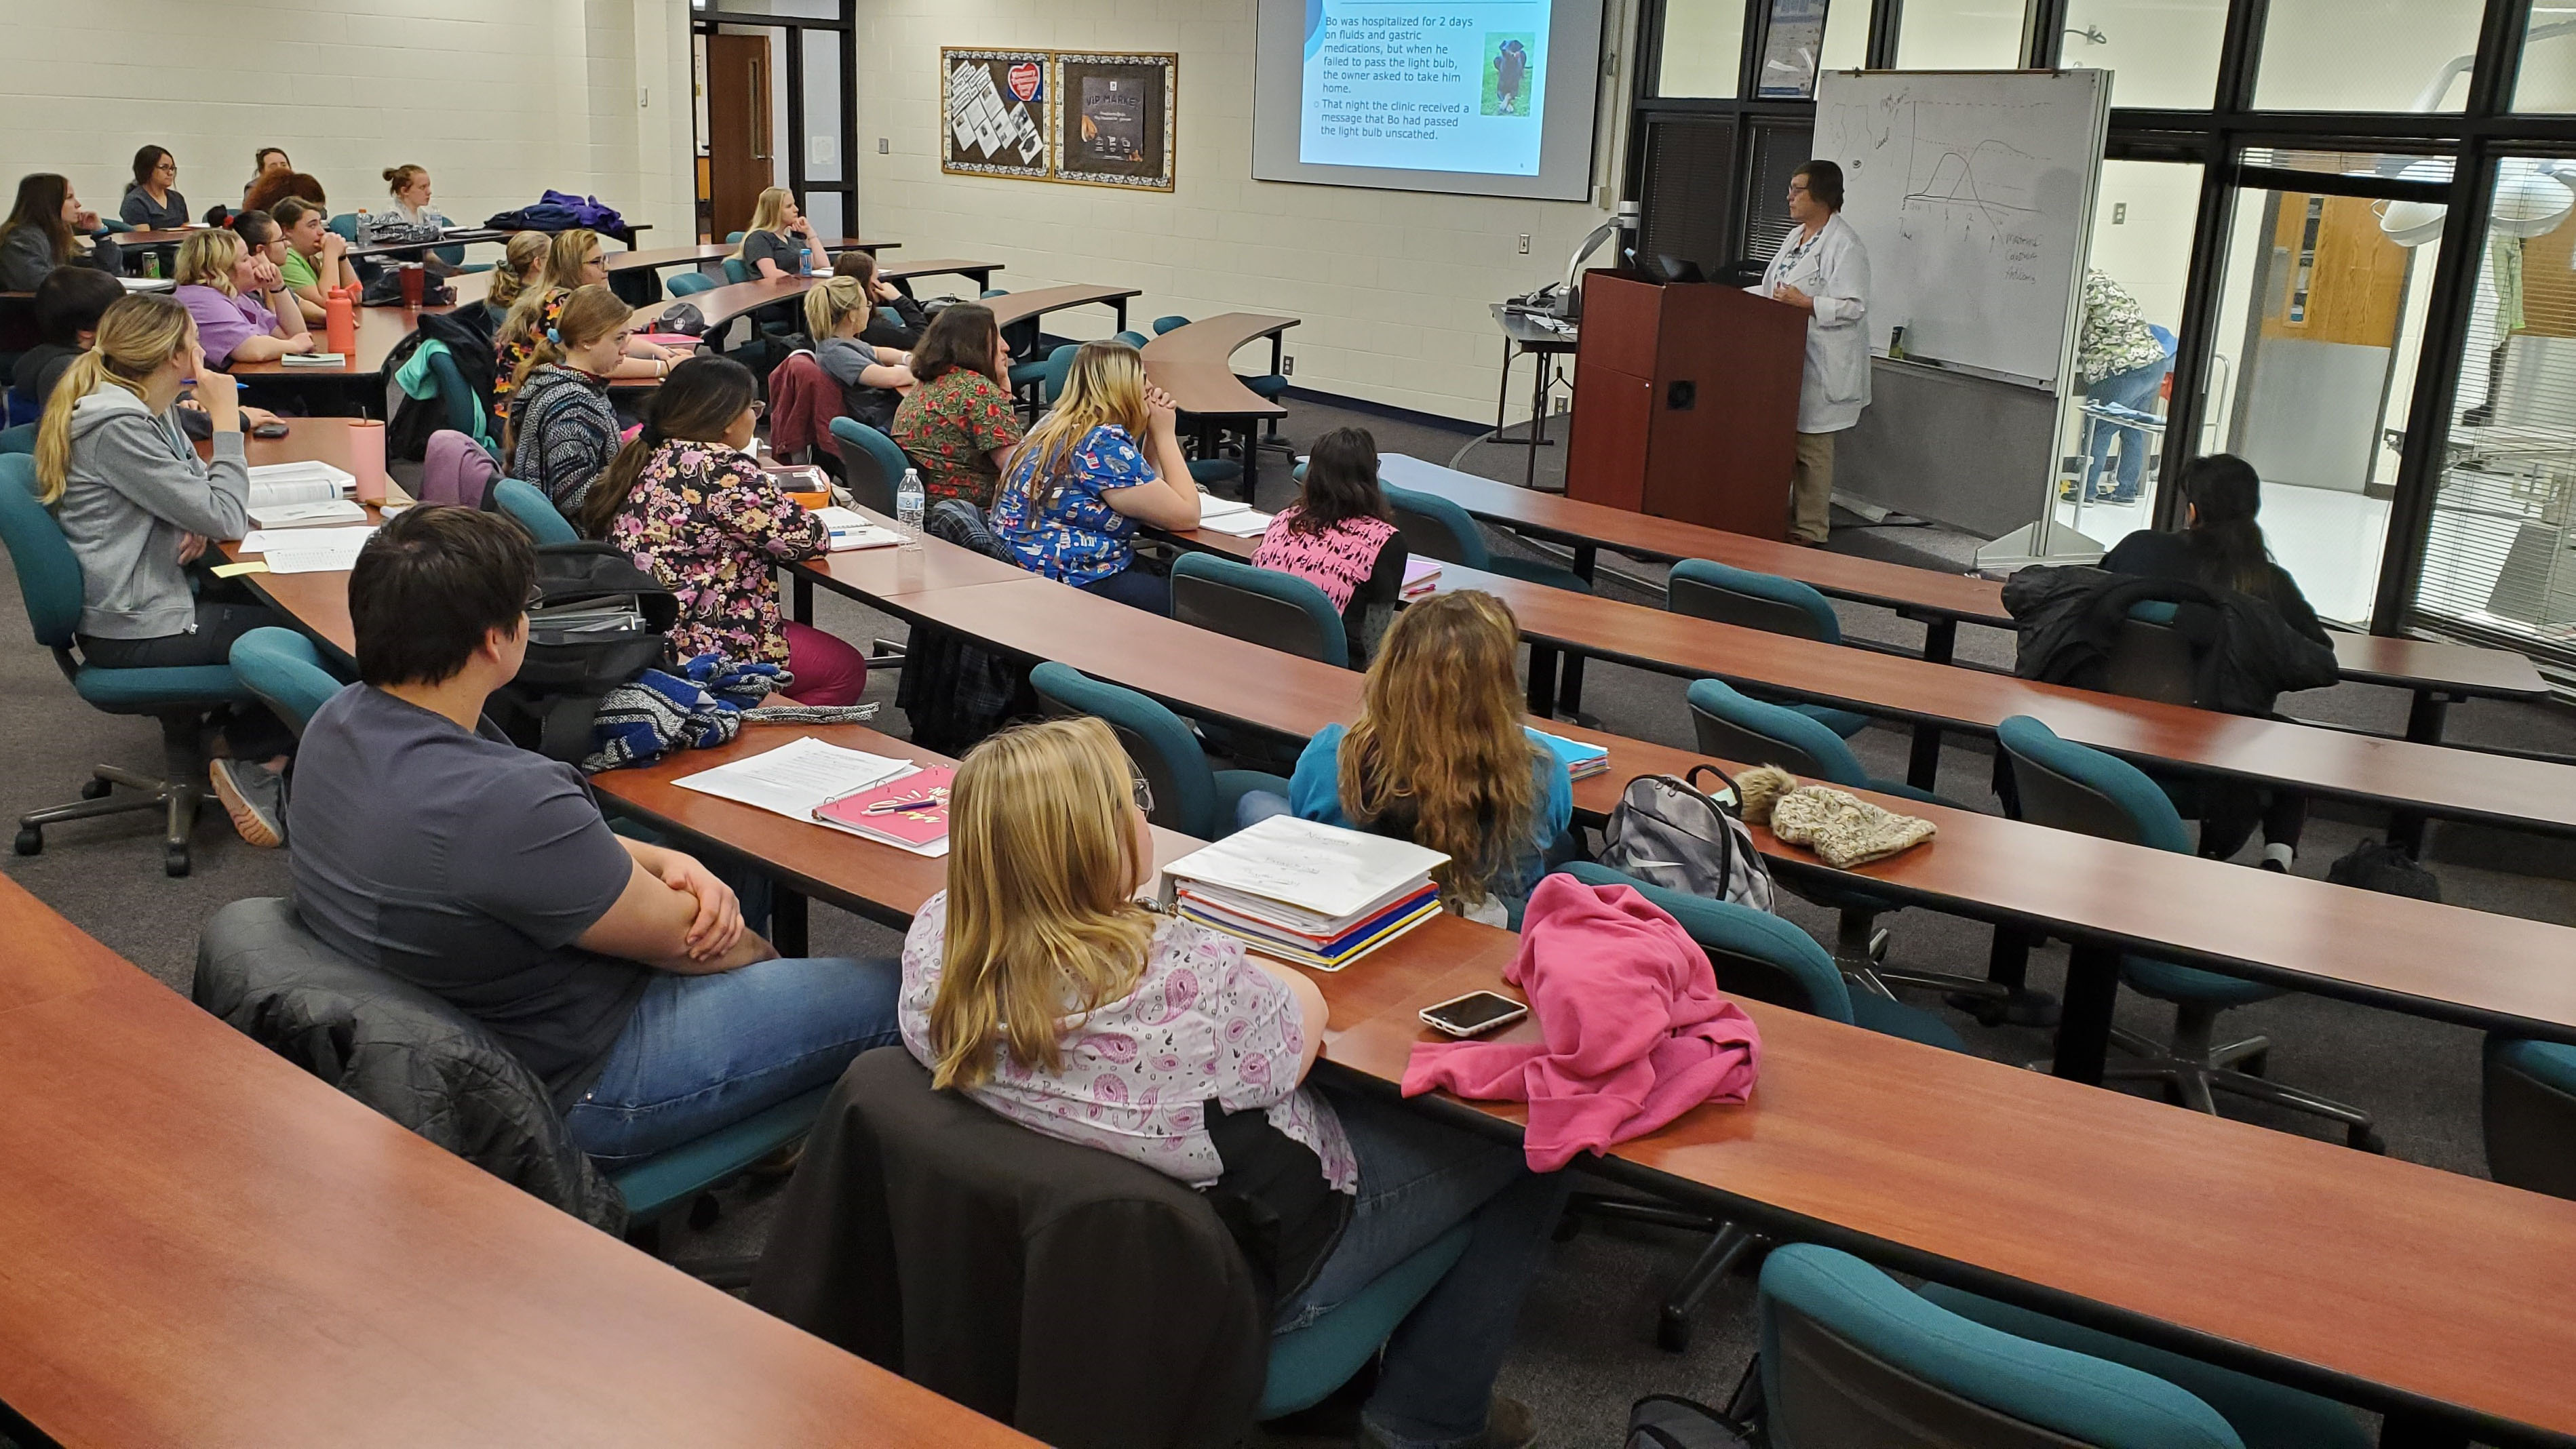 First-year veterinary technology students attend radiology lecture by Department Chair Barb Berg on Wednesday at the Nebraska College of Technical Agriculture. (Photo by M. Crawford / NCTA)